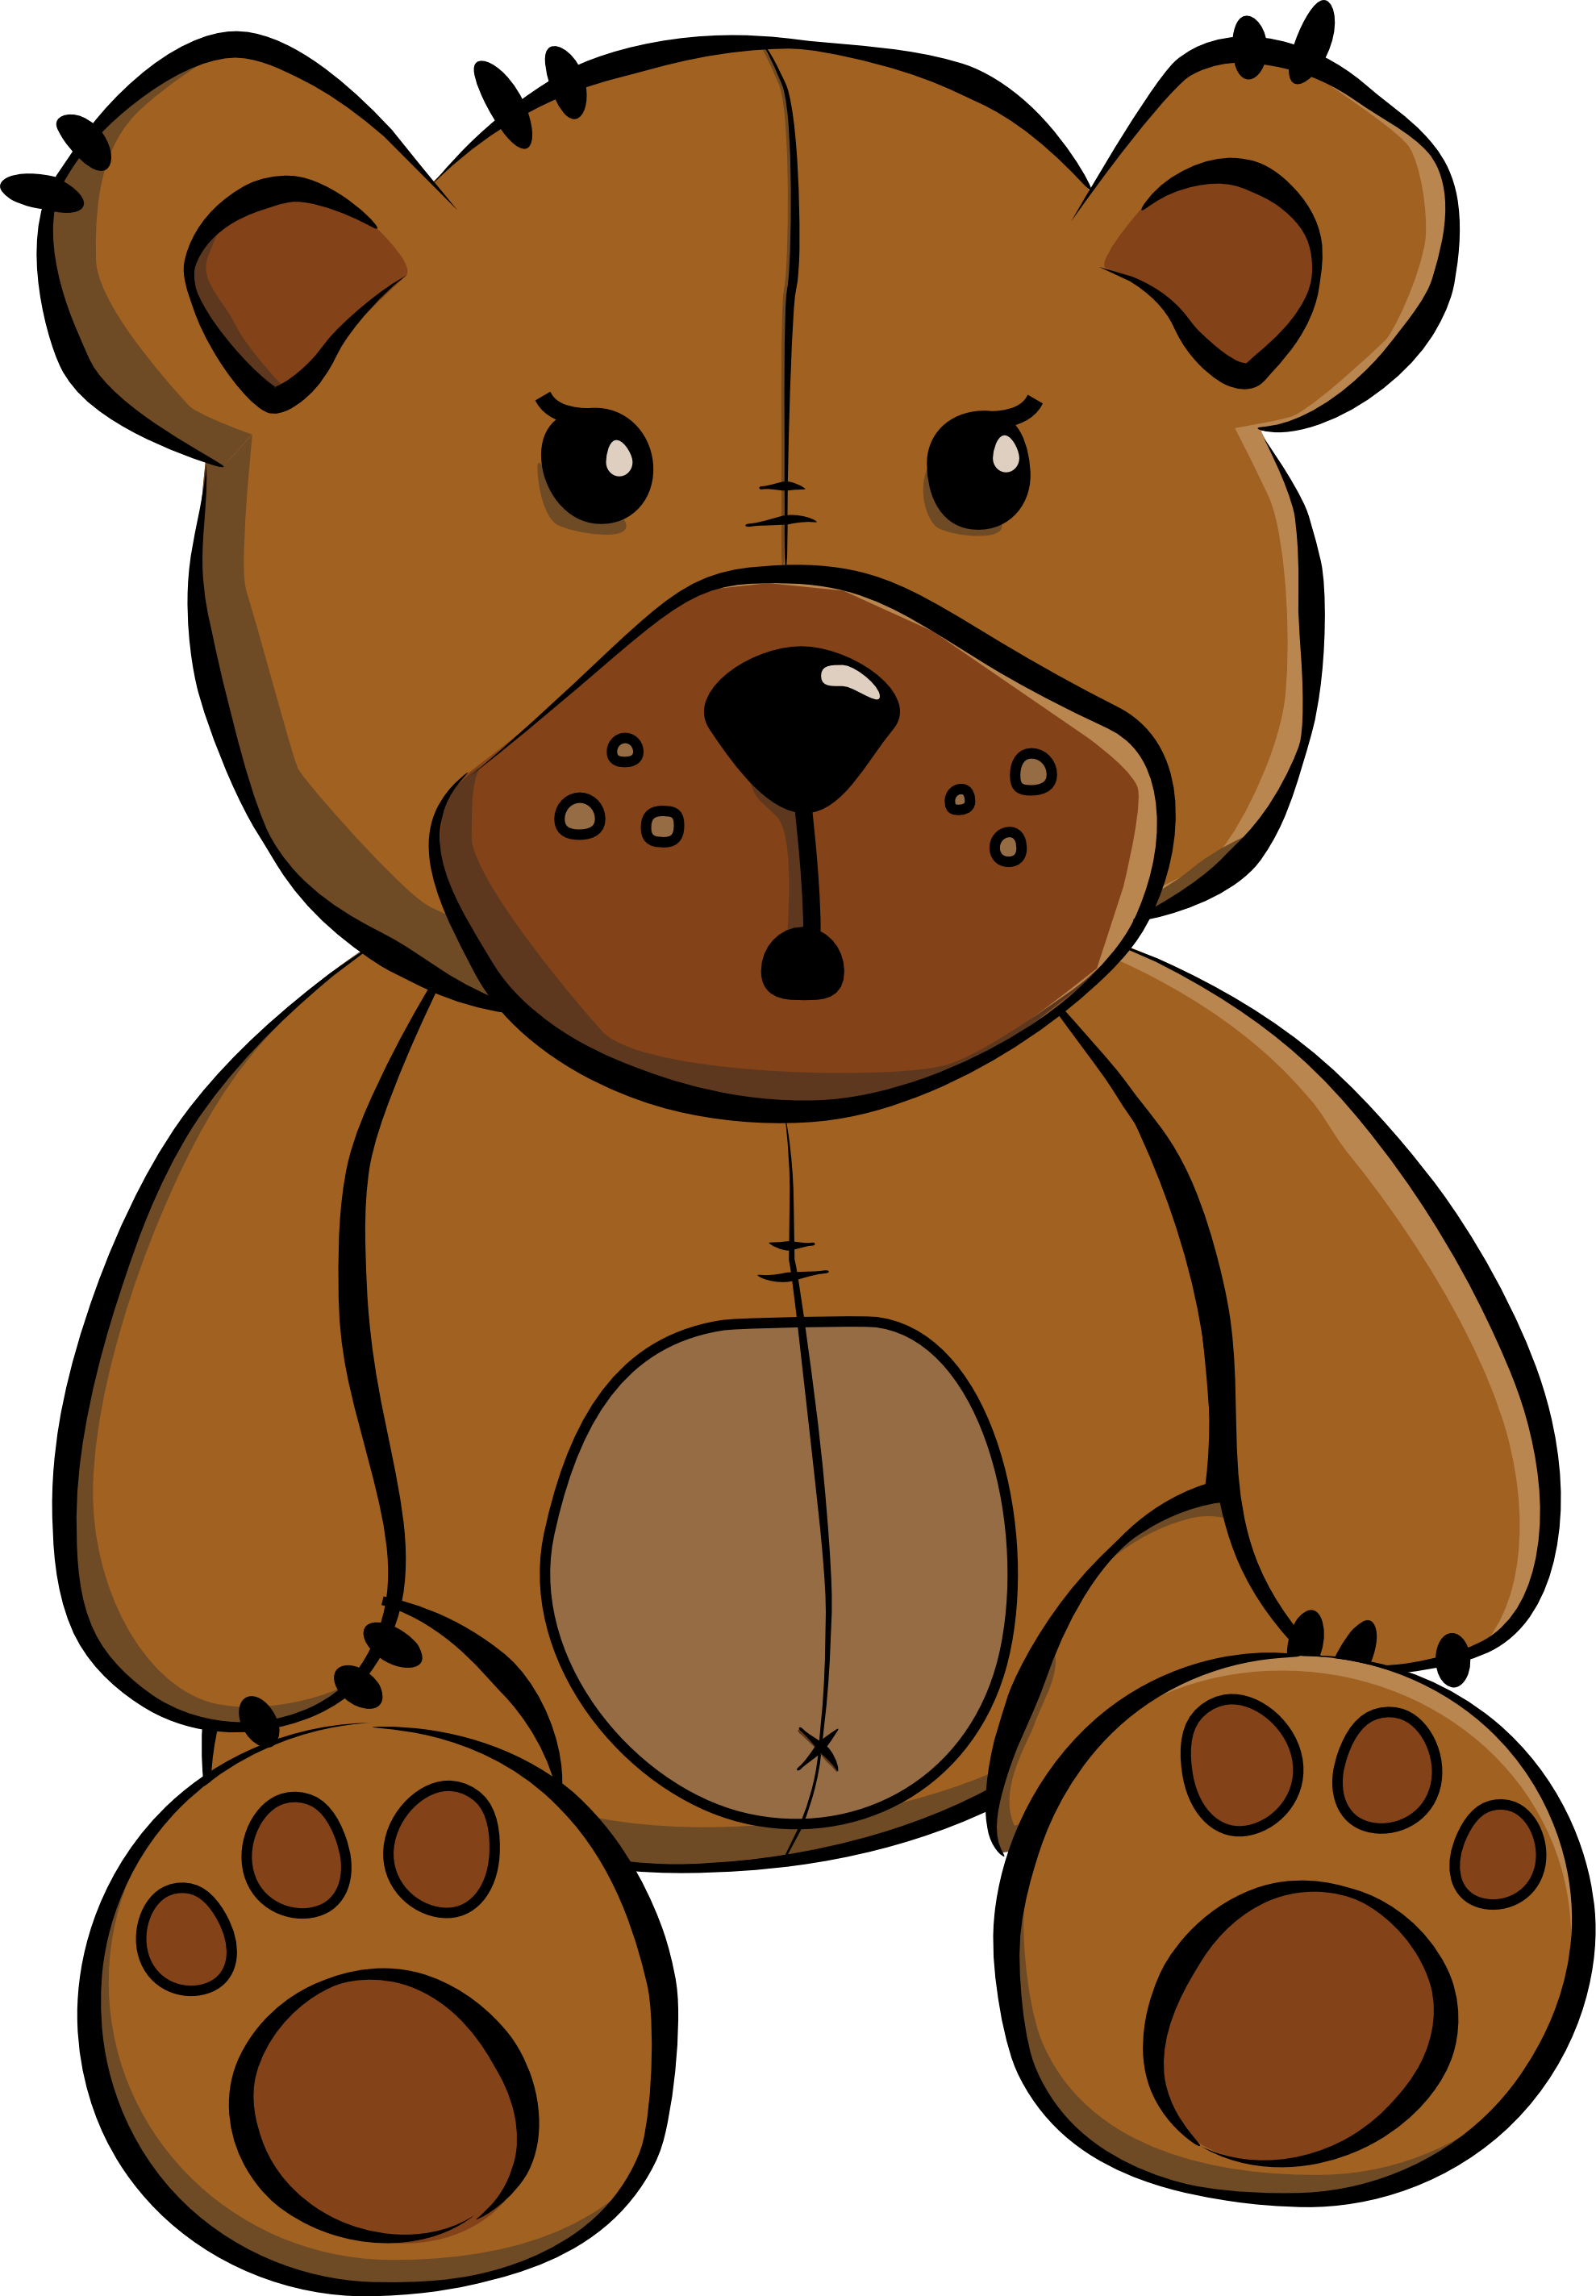 Teddy bear clip art. Clipart definition figure